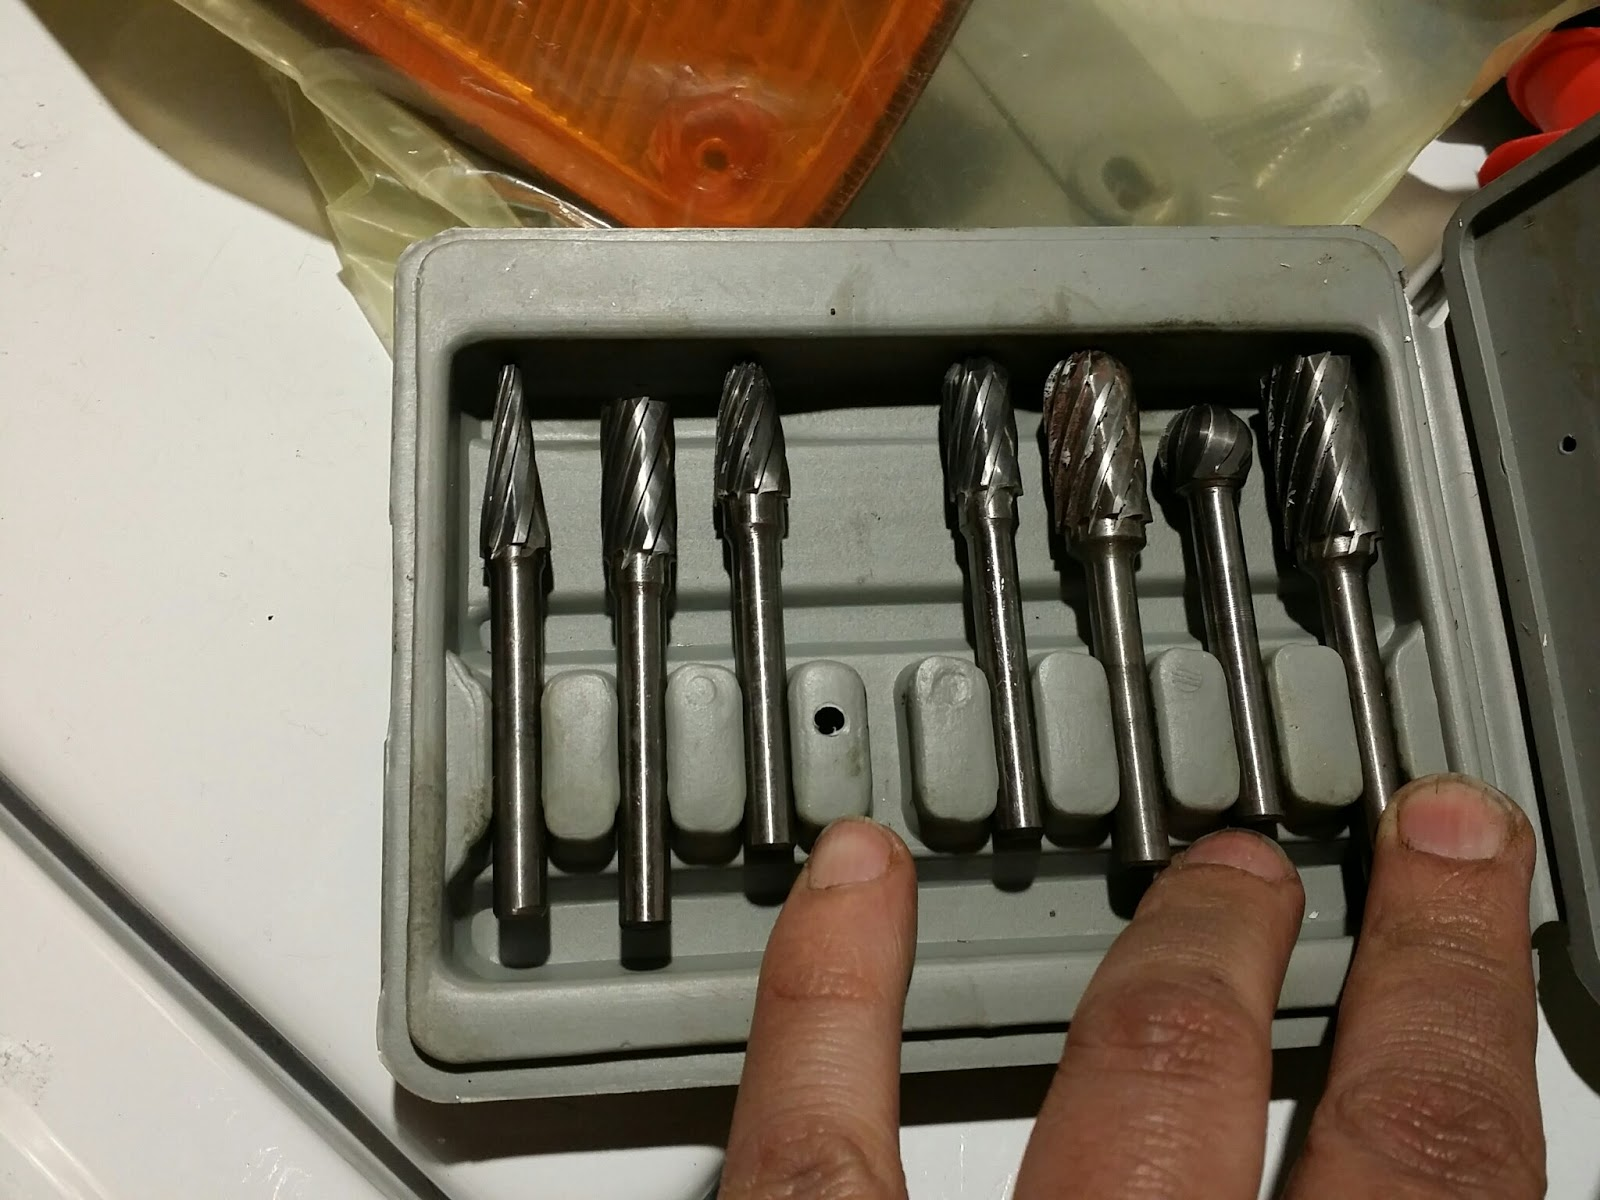 Beaver Built: Tool Review Tuesday, 06: Grizzly 8-piece ...